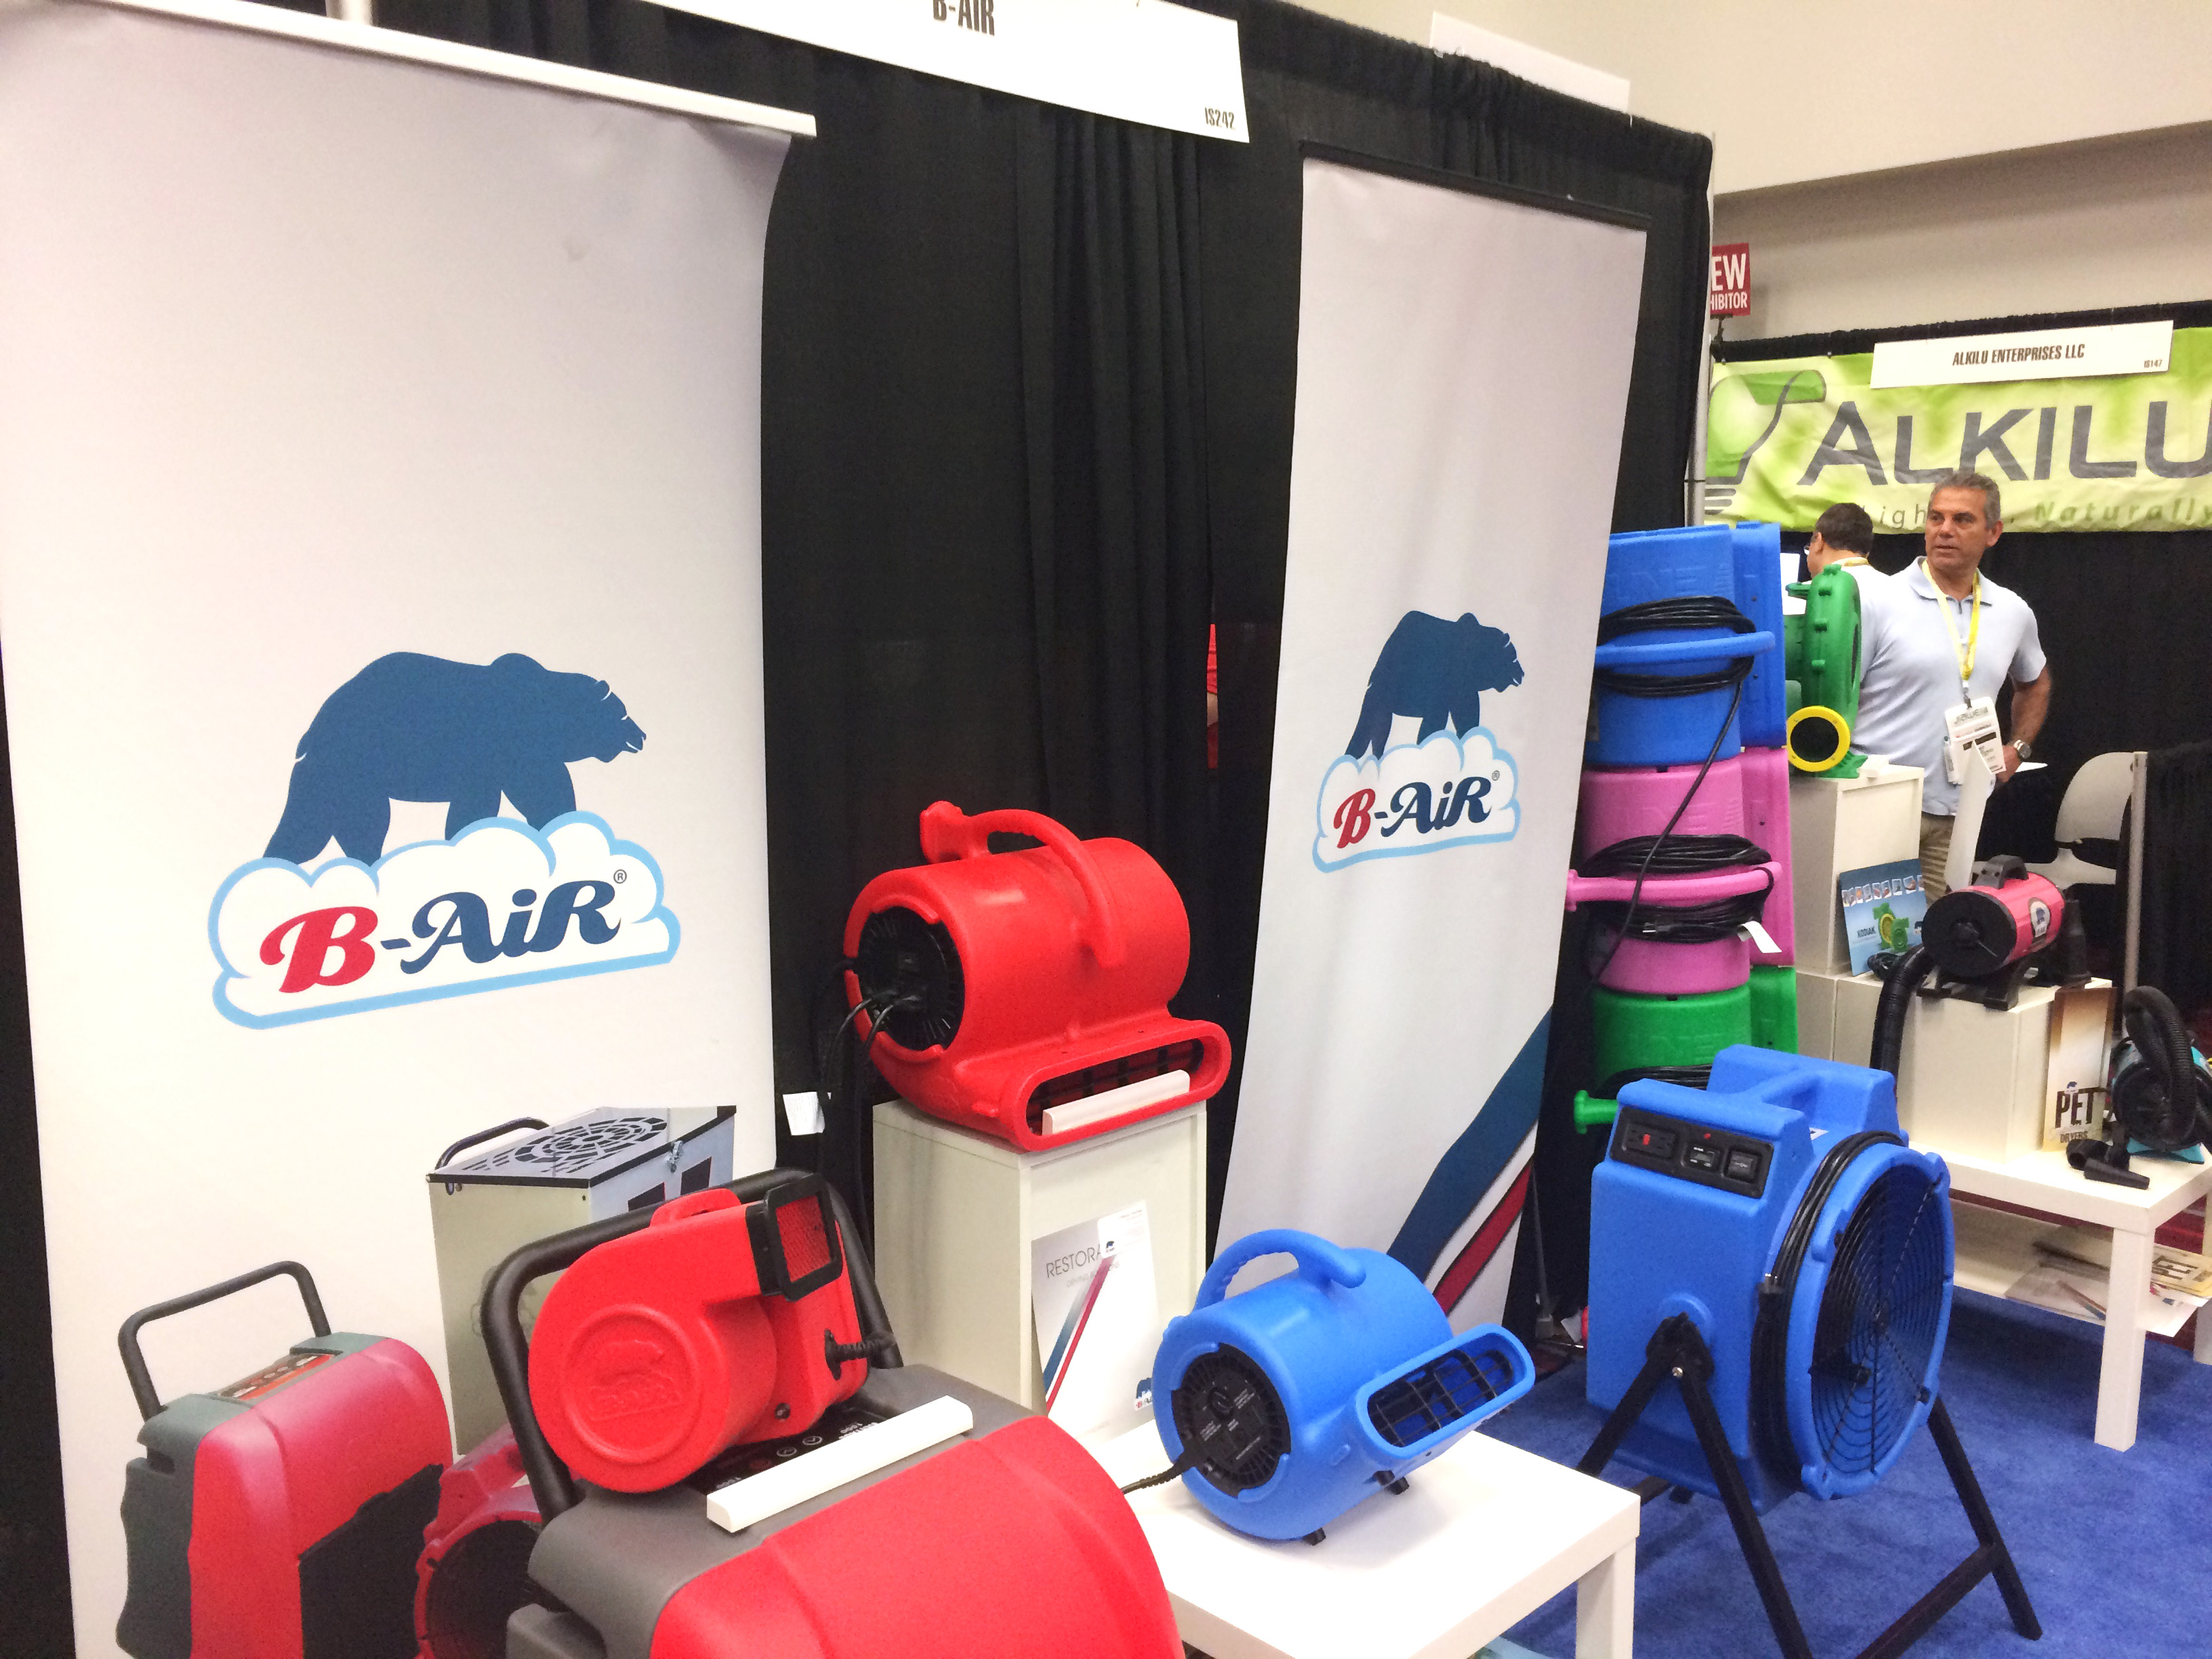 B-air products during expo